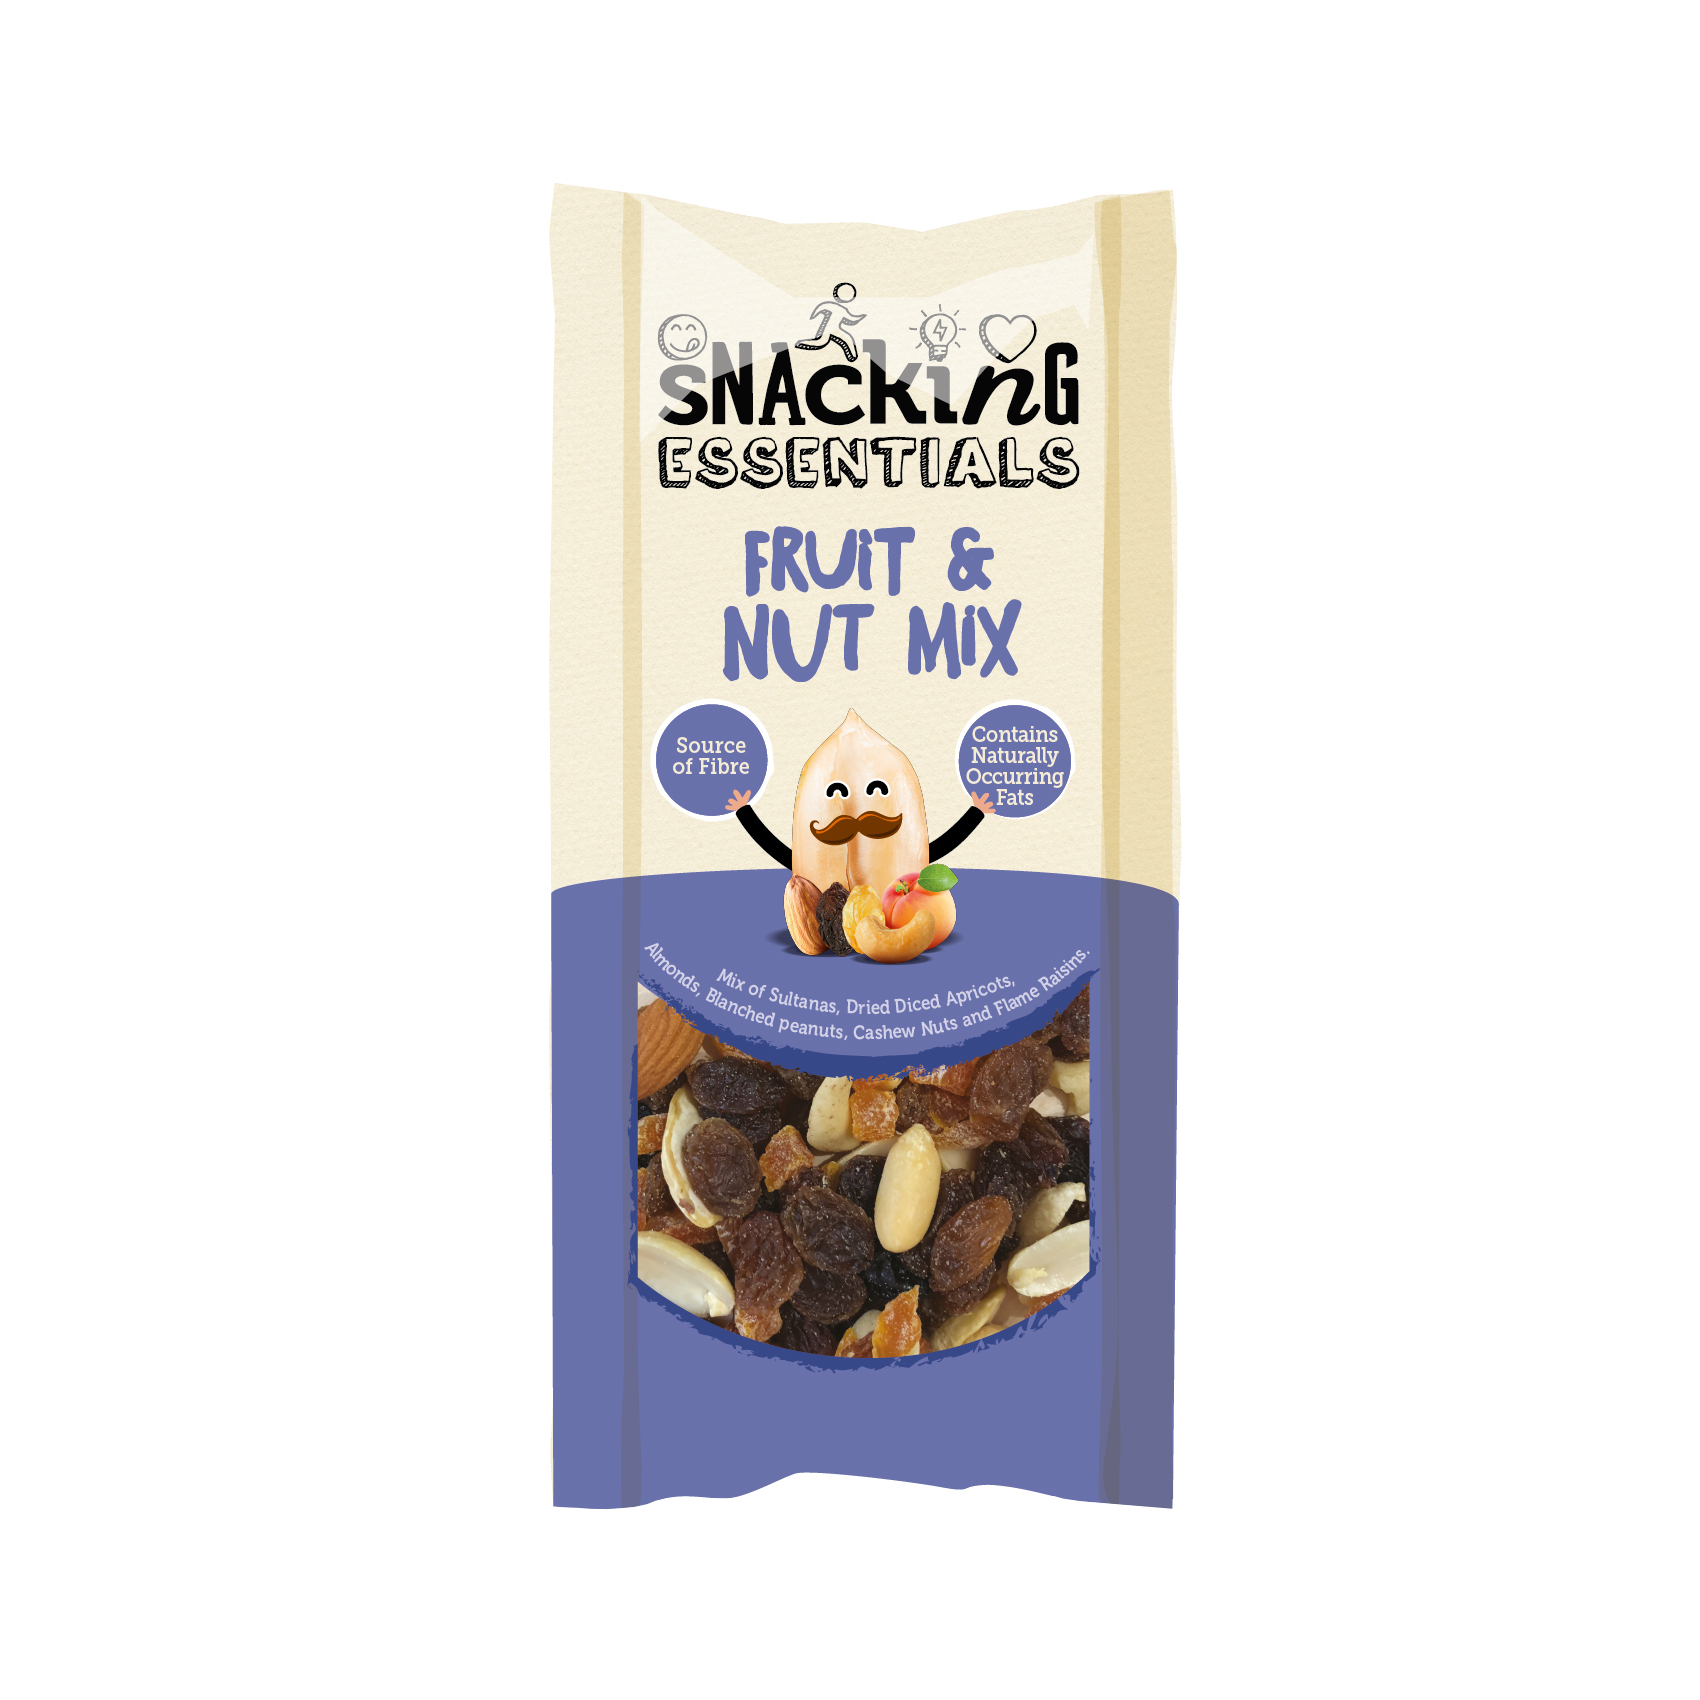 Breakfast / Snacks Snacking Essentials Fruit & Nut Mix Shot Packs 40g Ref 508440 Pack 16